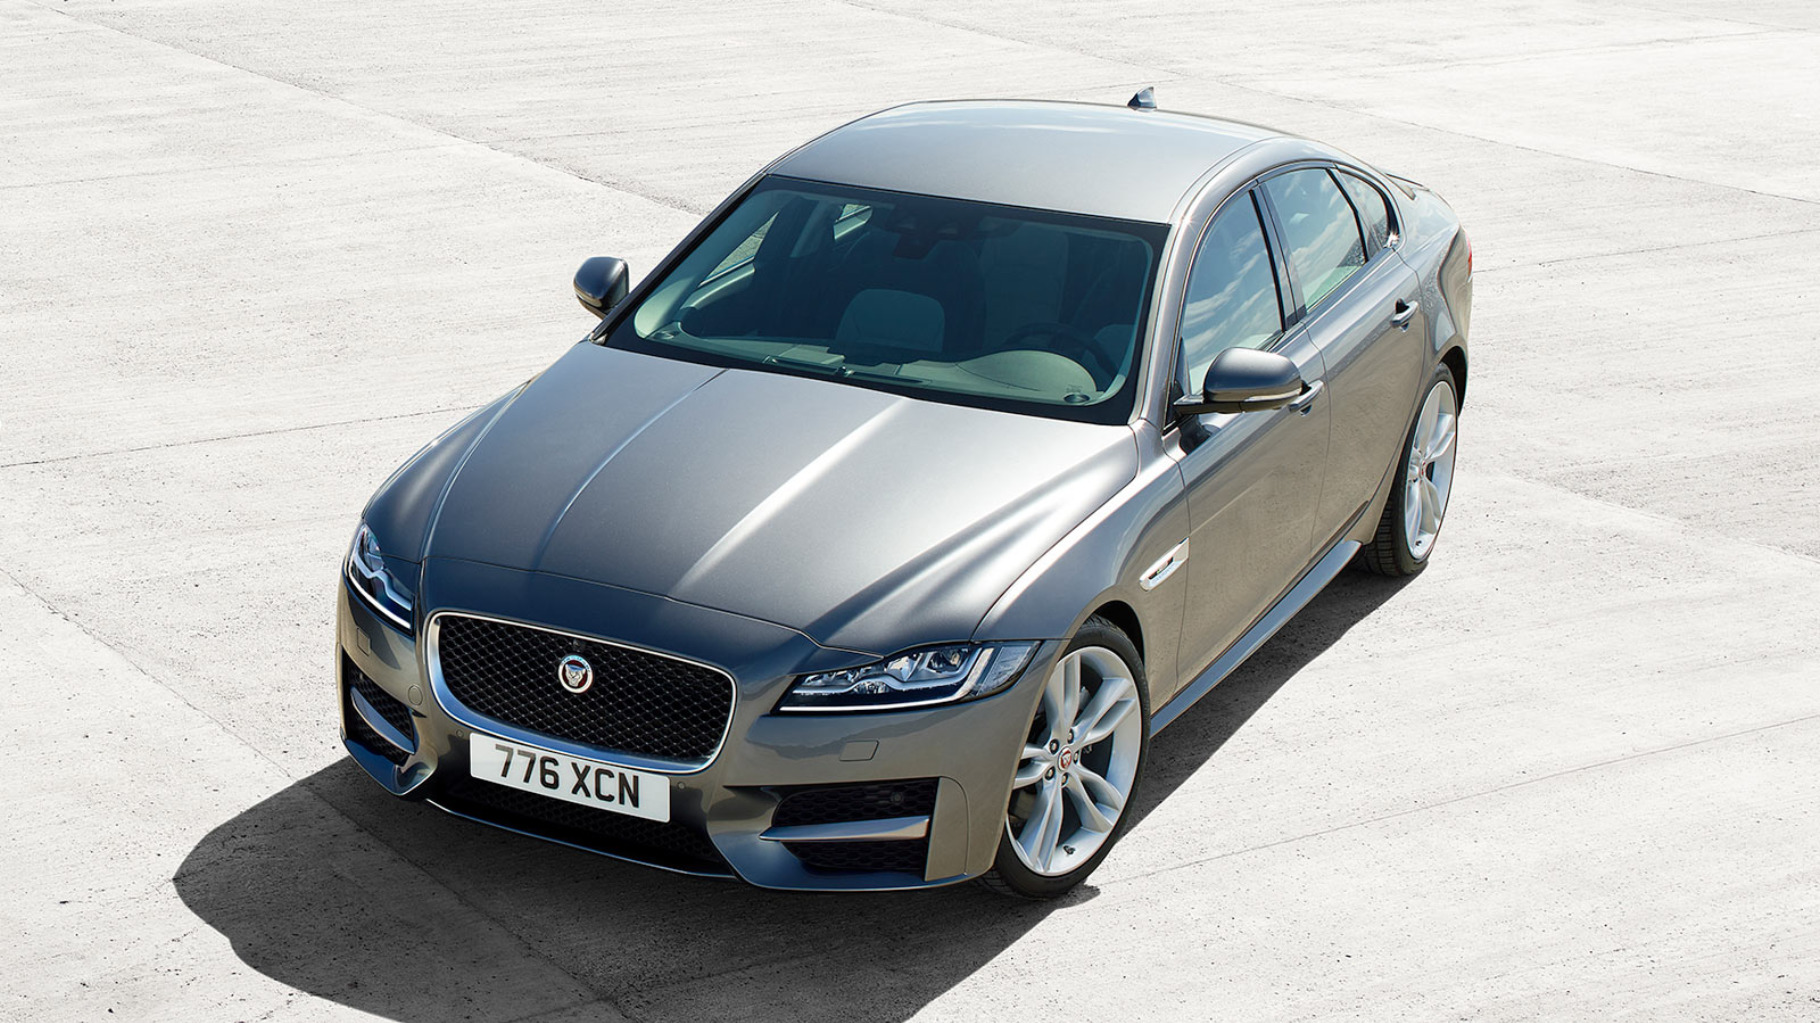 A grey Jaguar XF Saloon parked in the sun.